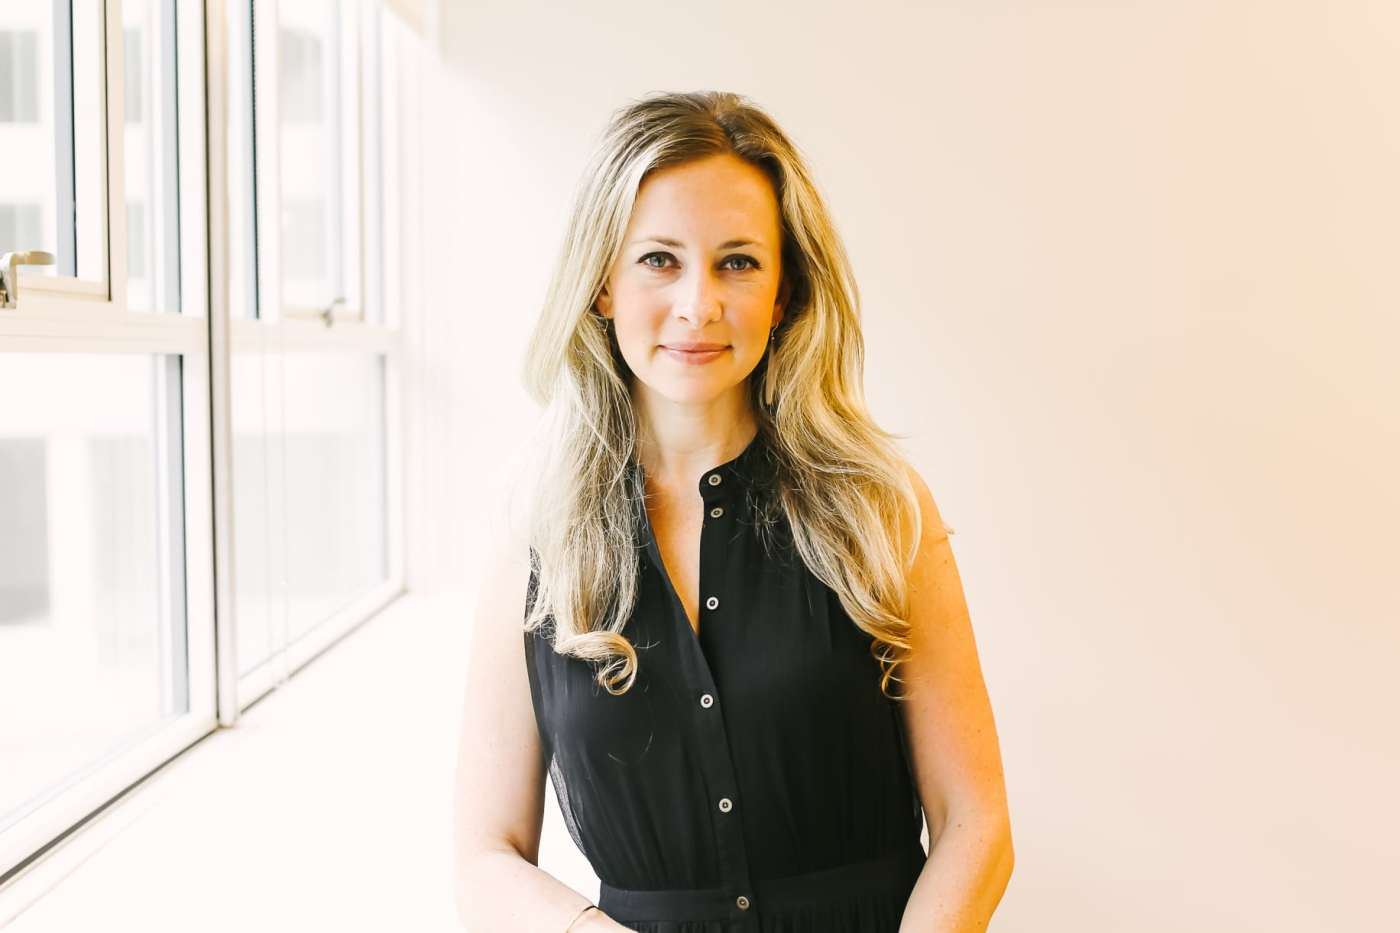 Suzanne Humphries of Suzanne Humphries Design, a Birmingham-based Interior Design firm that operates out of Forge Coworking space. Photo by Lauren Bedford for Bham Now